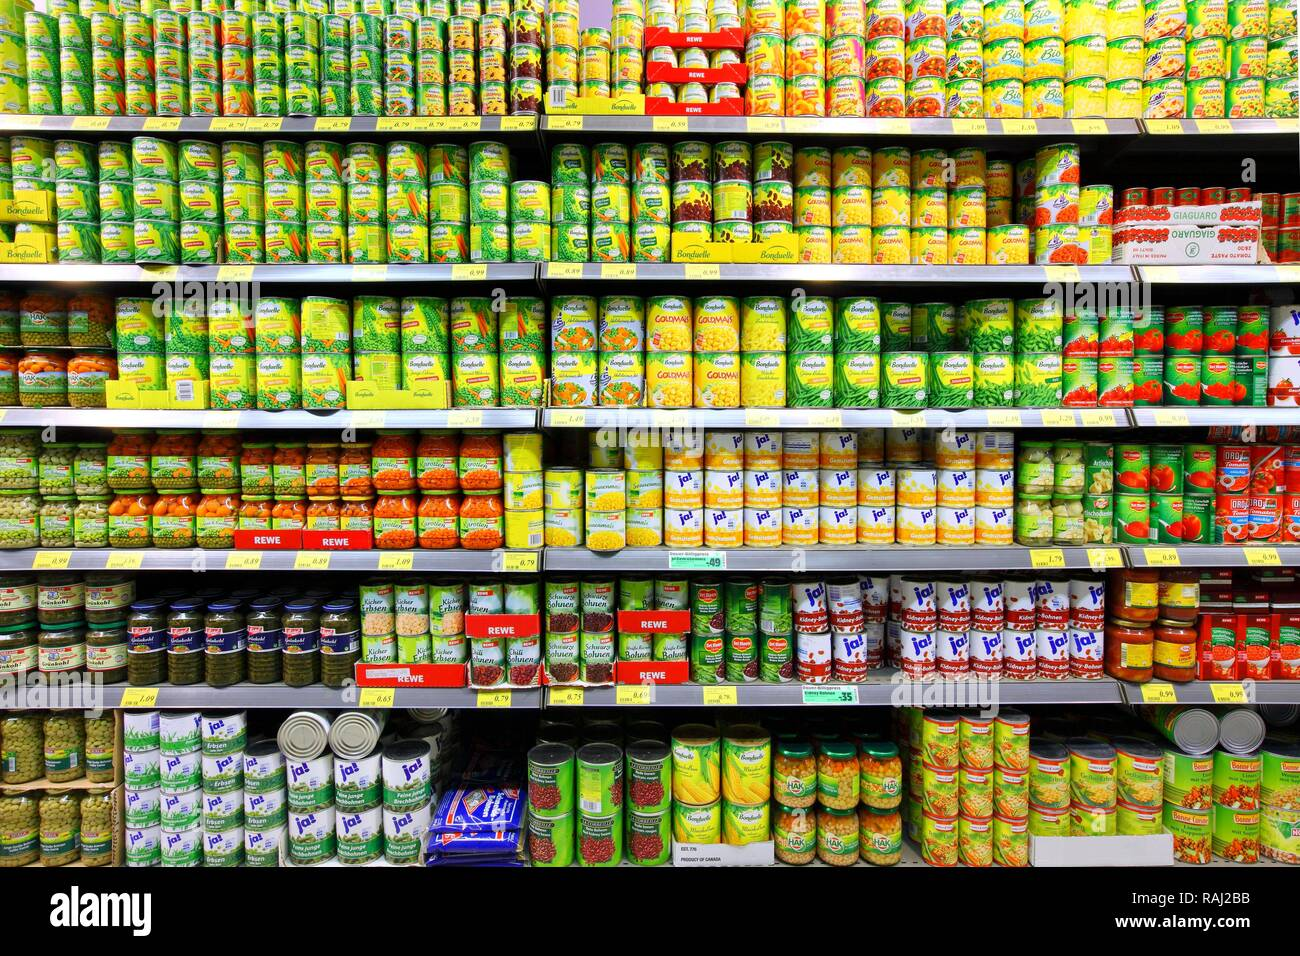 Shelves with canned food, self-service, food department, supermarket - Stock Image